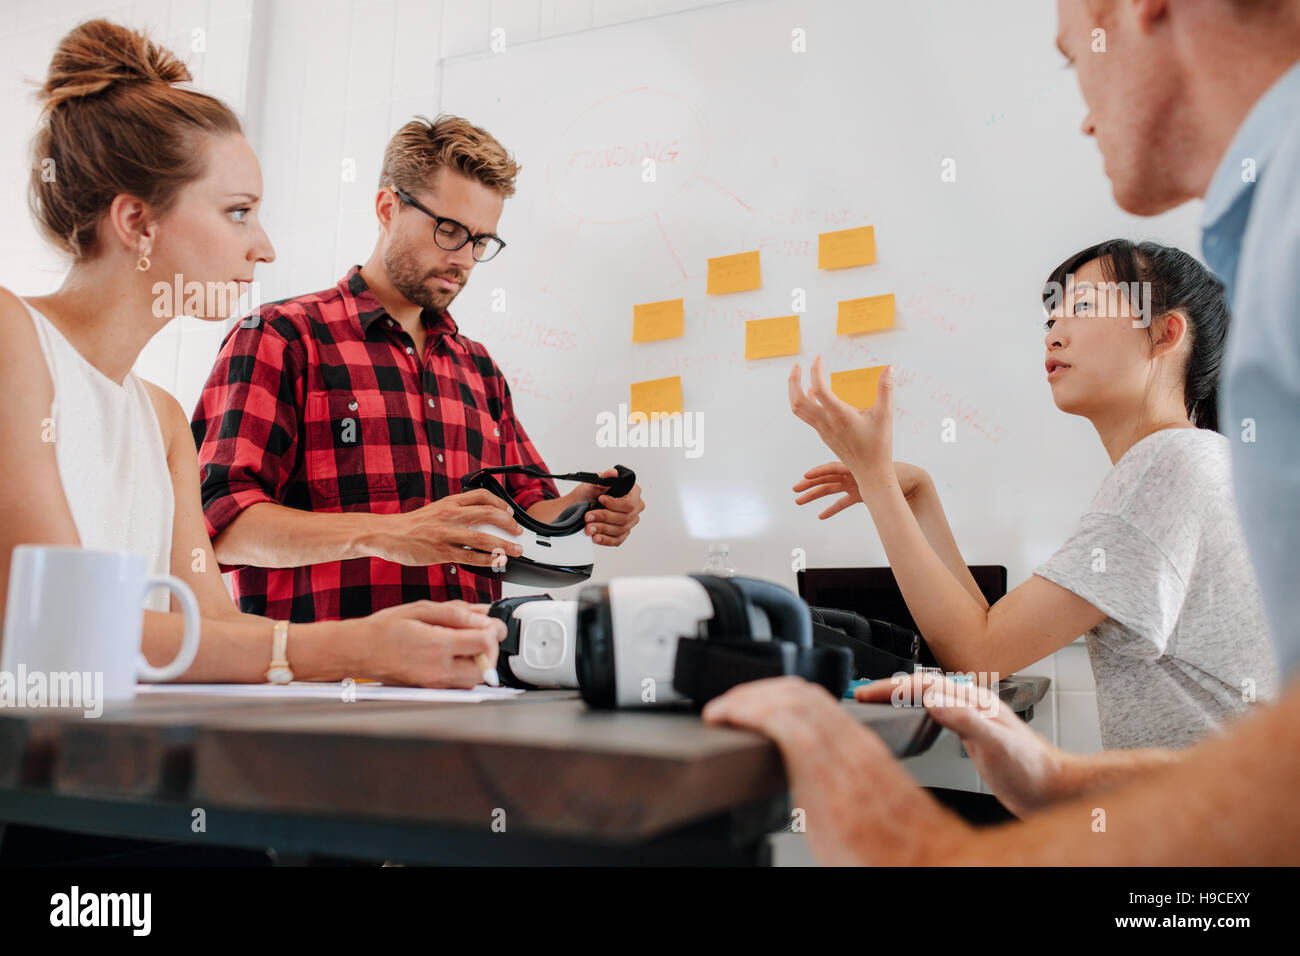 Group of young people meeting in conference room with augmented reality devices on table. Diverse business team - Stock Image